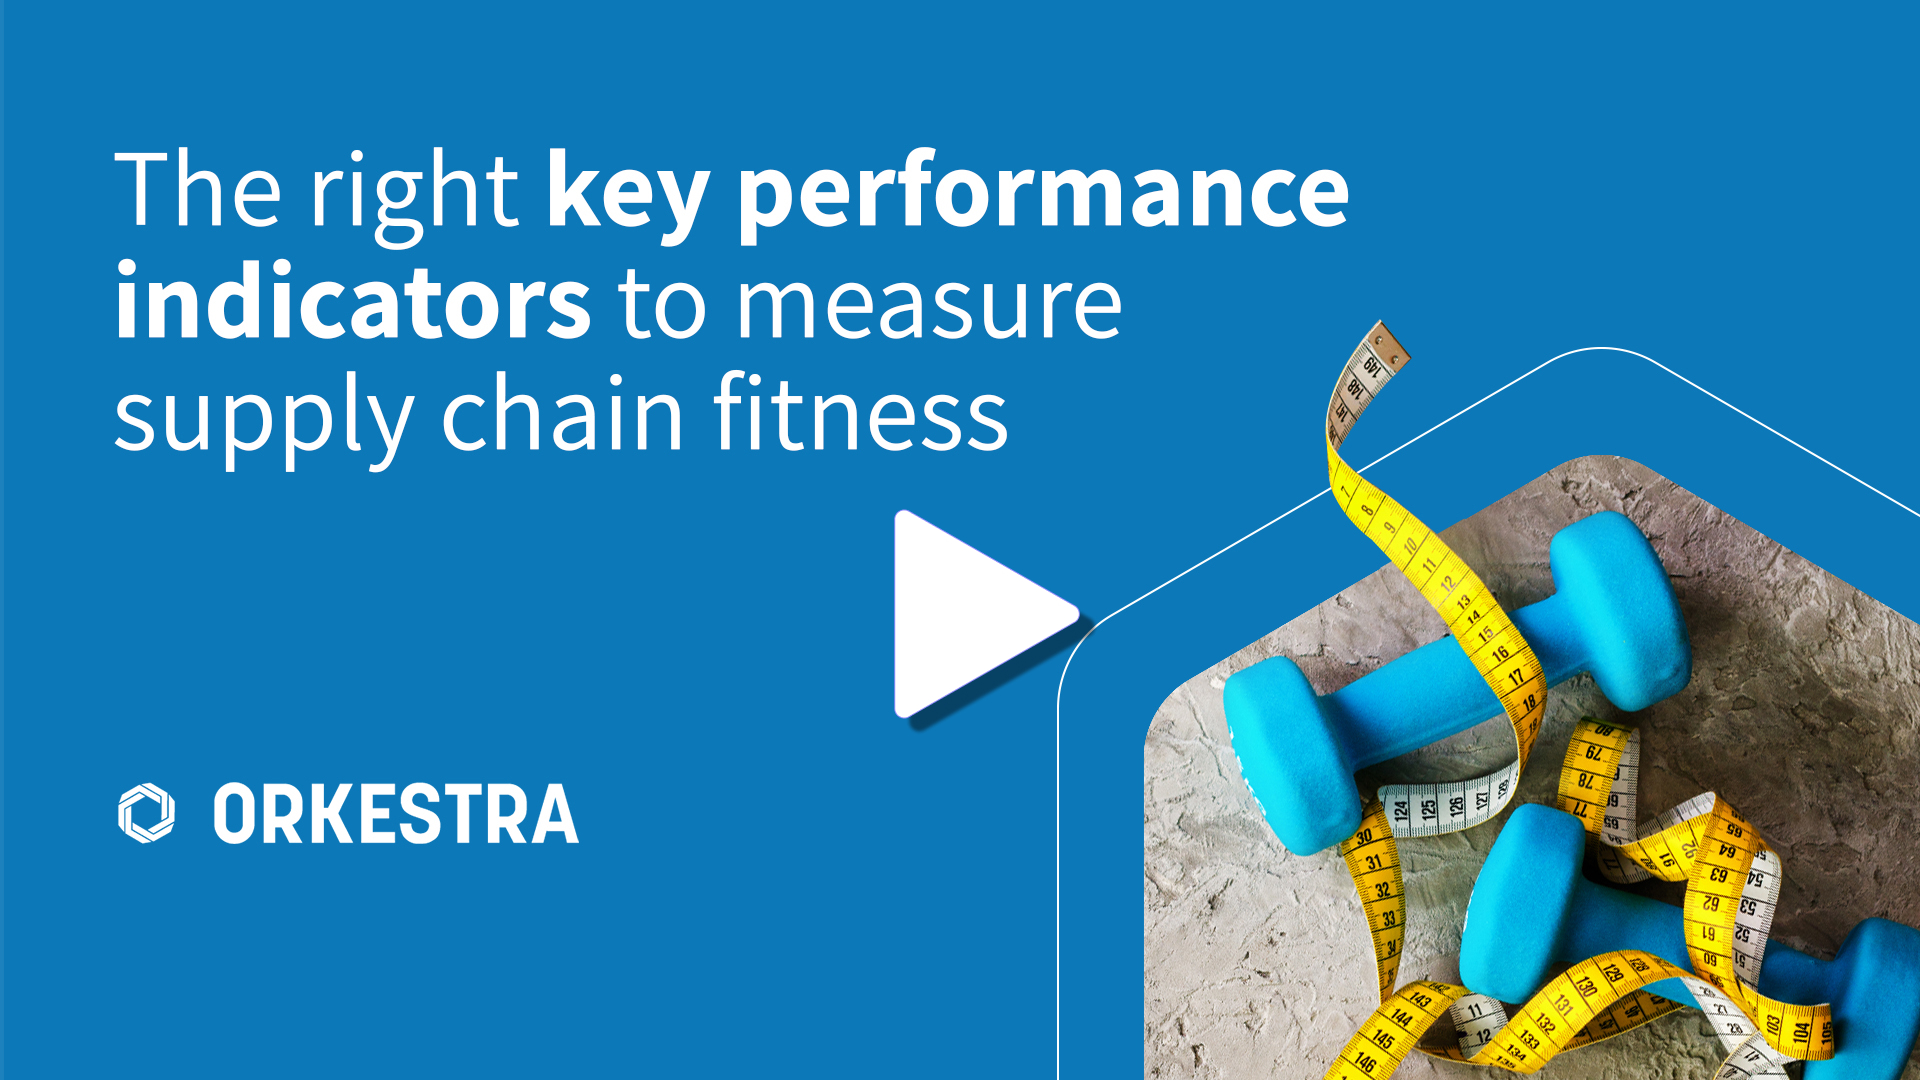 KPI's are key to understanding your business metrics - learn which ones you should be looking at to measure your business's supply chain fitness.